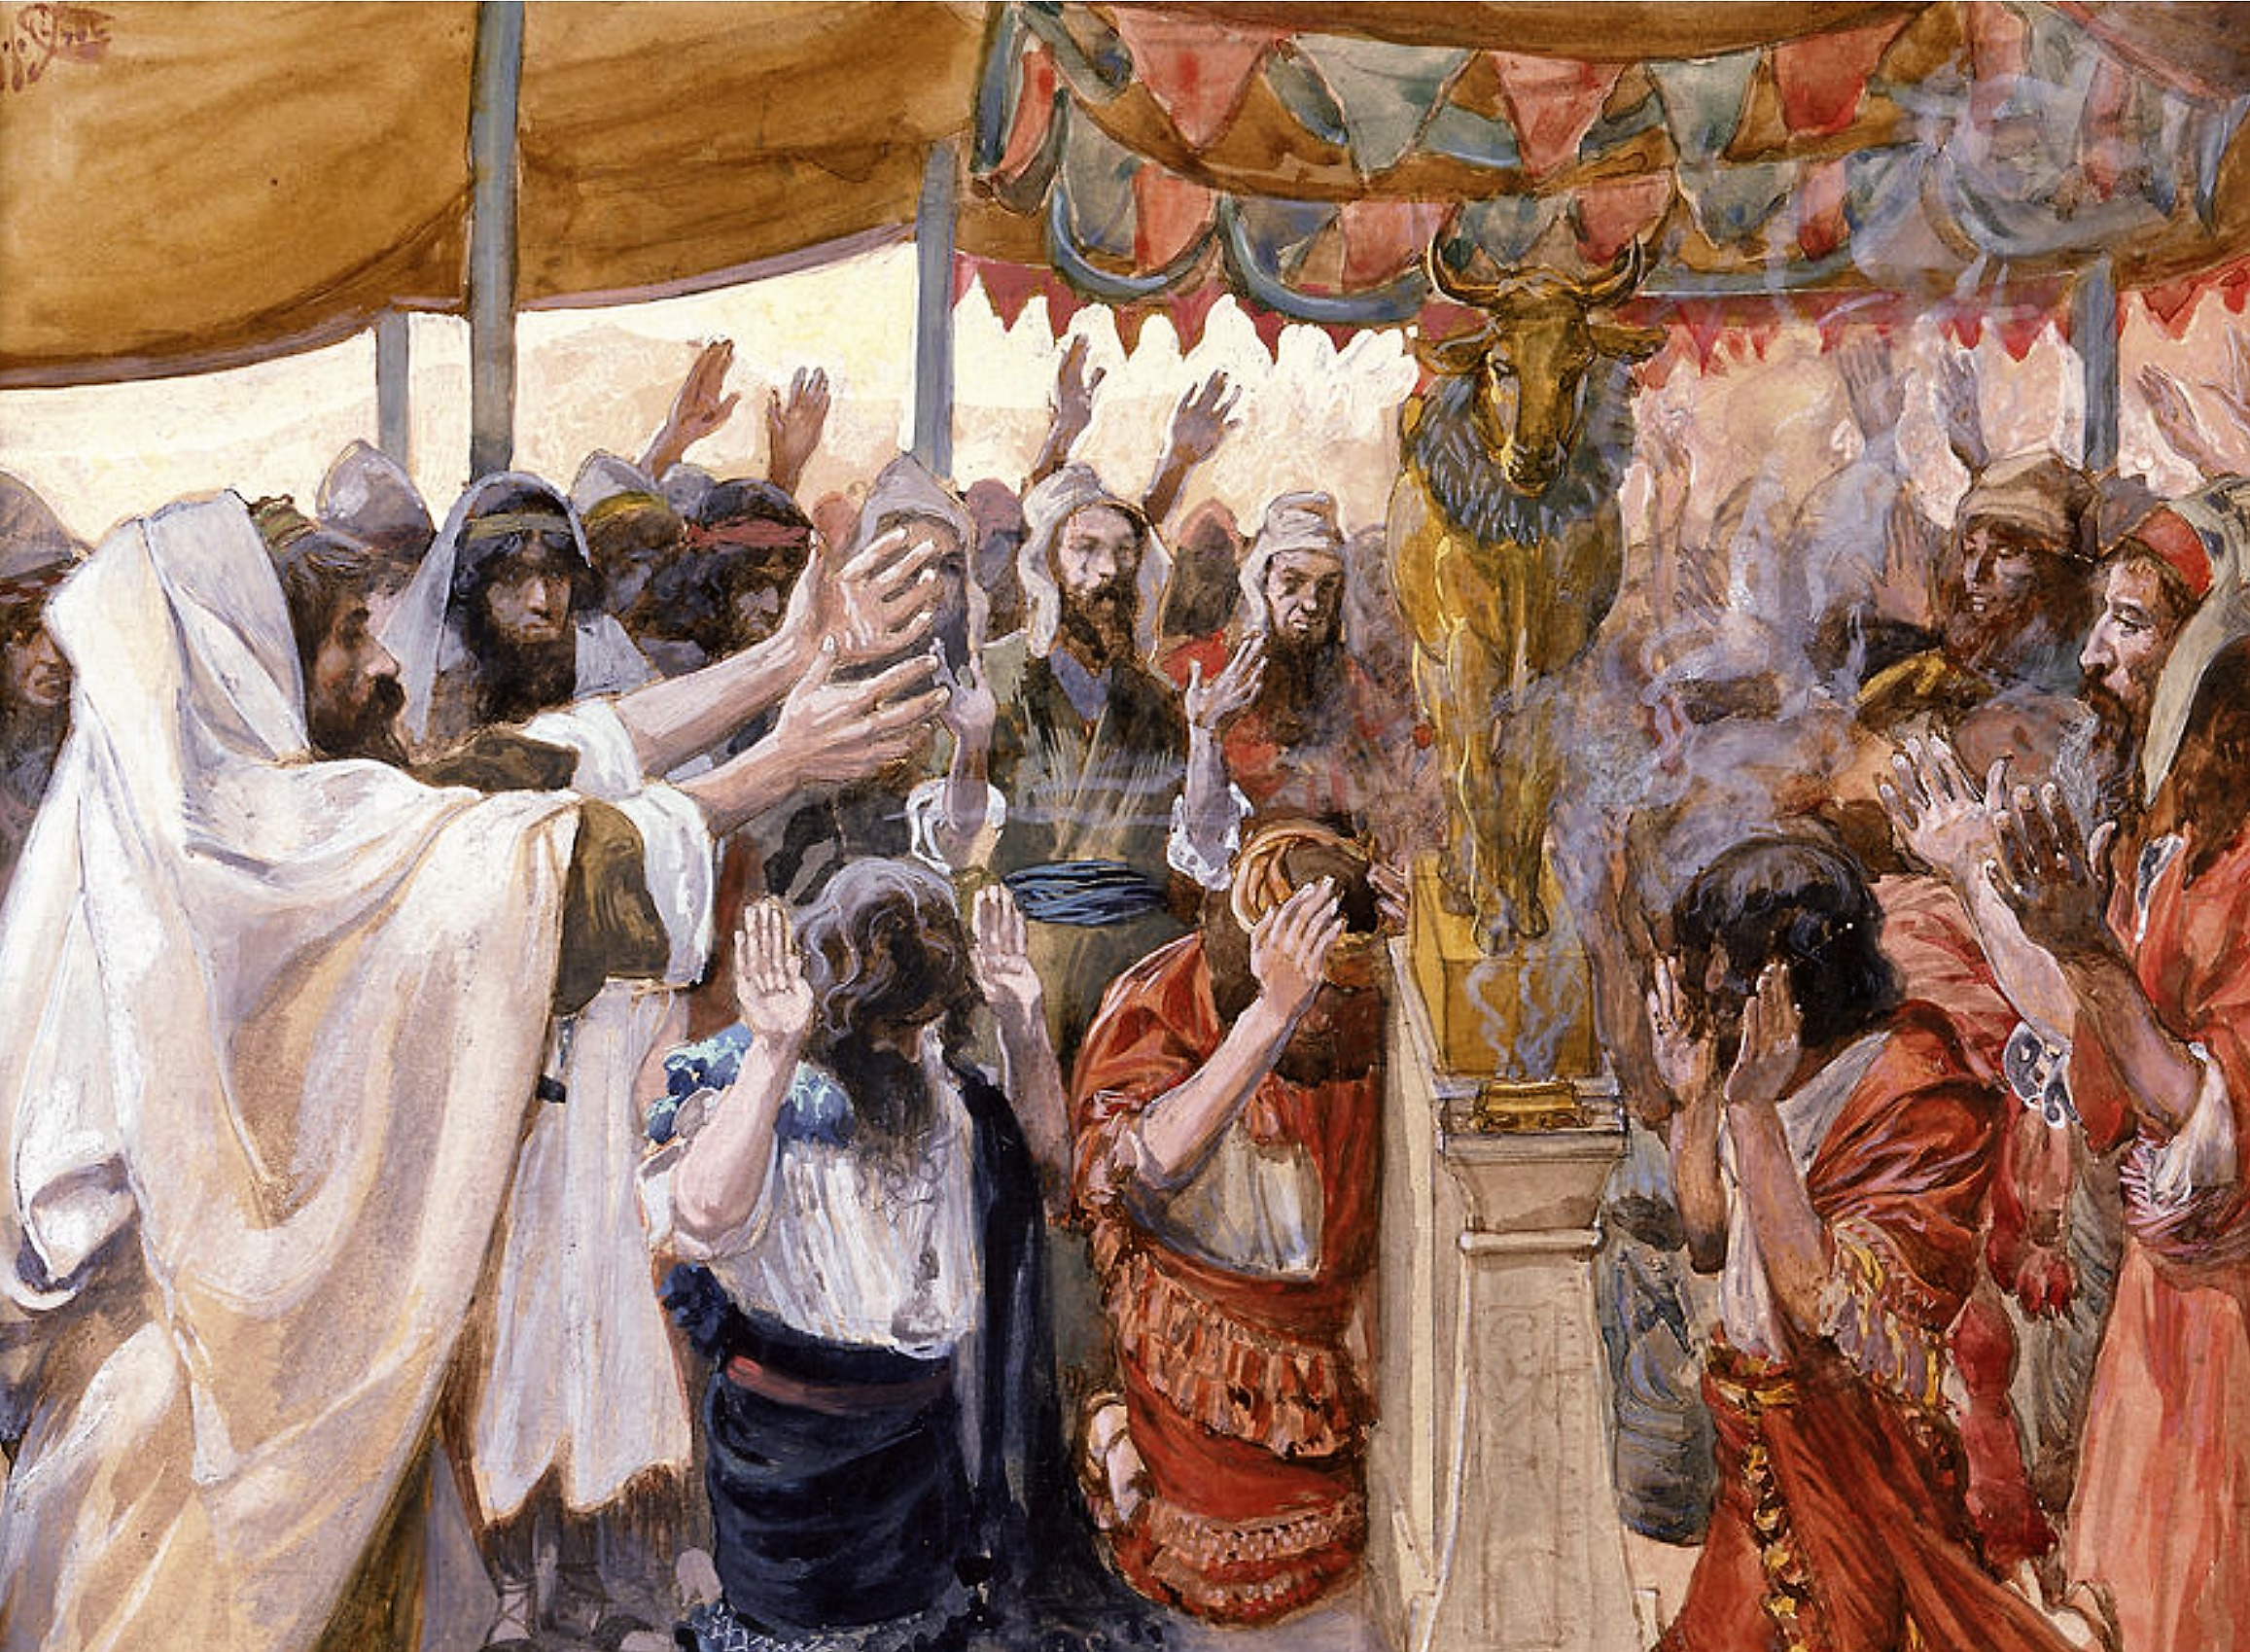 https://upload.wikimedia.org/wikipedia/commons/a/ac/Tissot_The_Golden_Calf.jpg